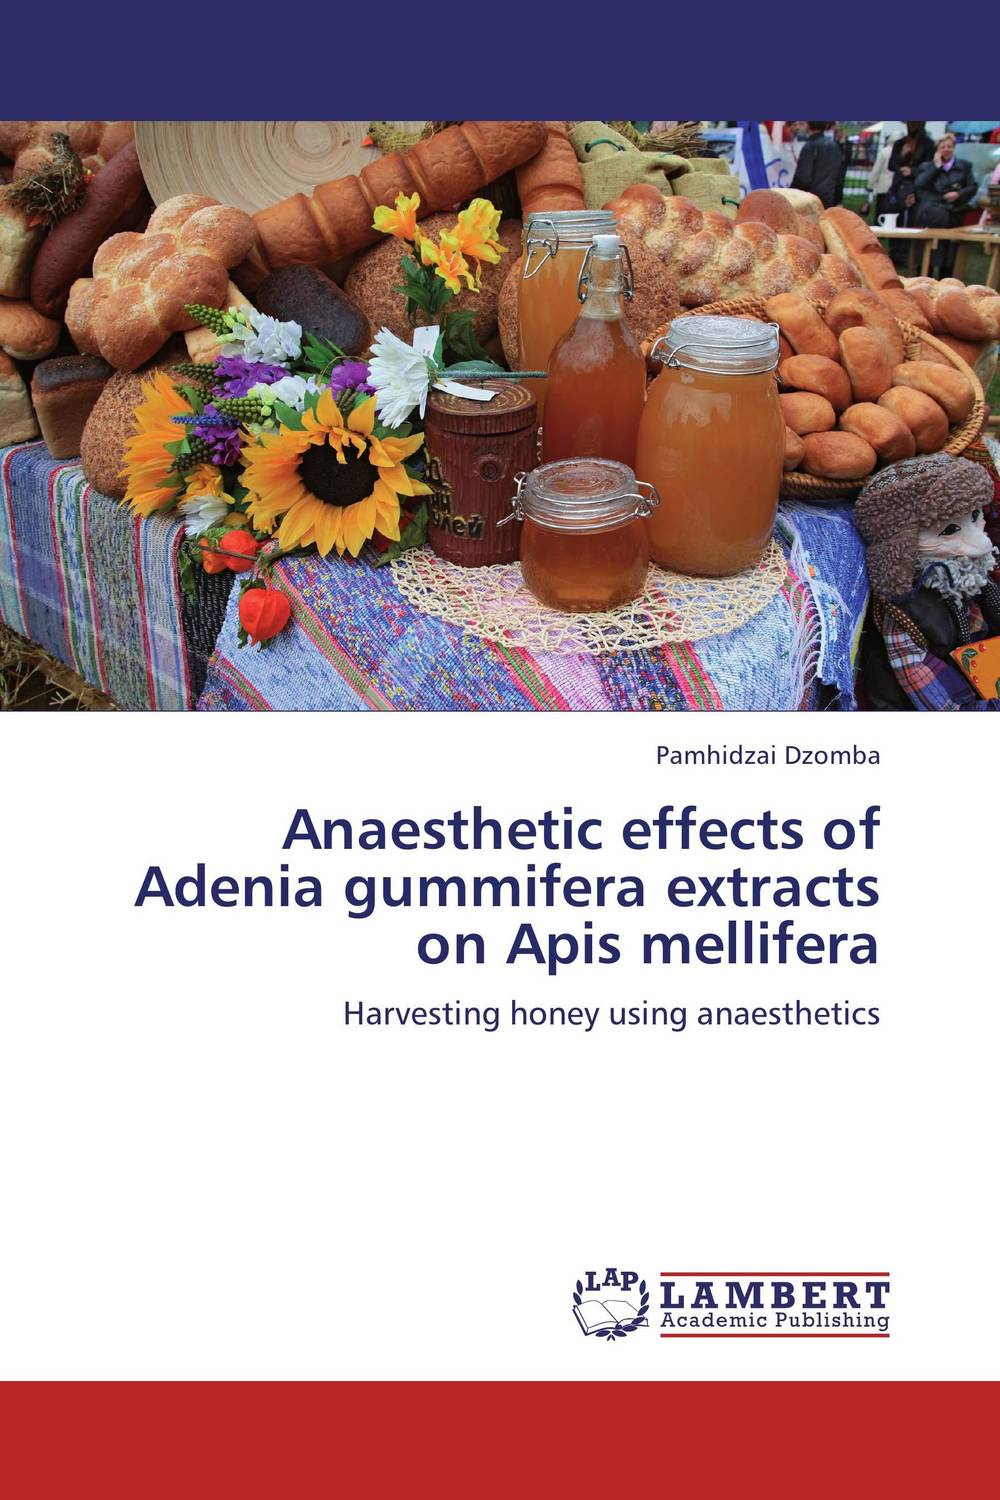 Anaesthetic effects of Adenia gummifera extracts on Apis mellifera honey bee products 12 frame electric honey extractor with higher quality